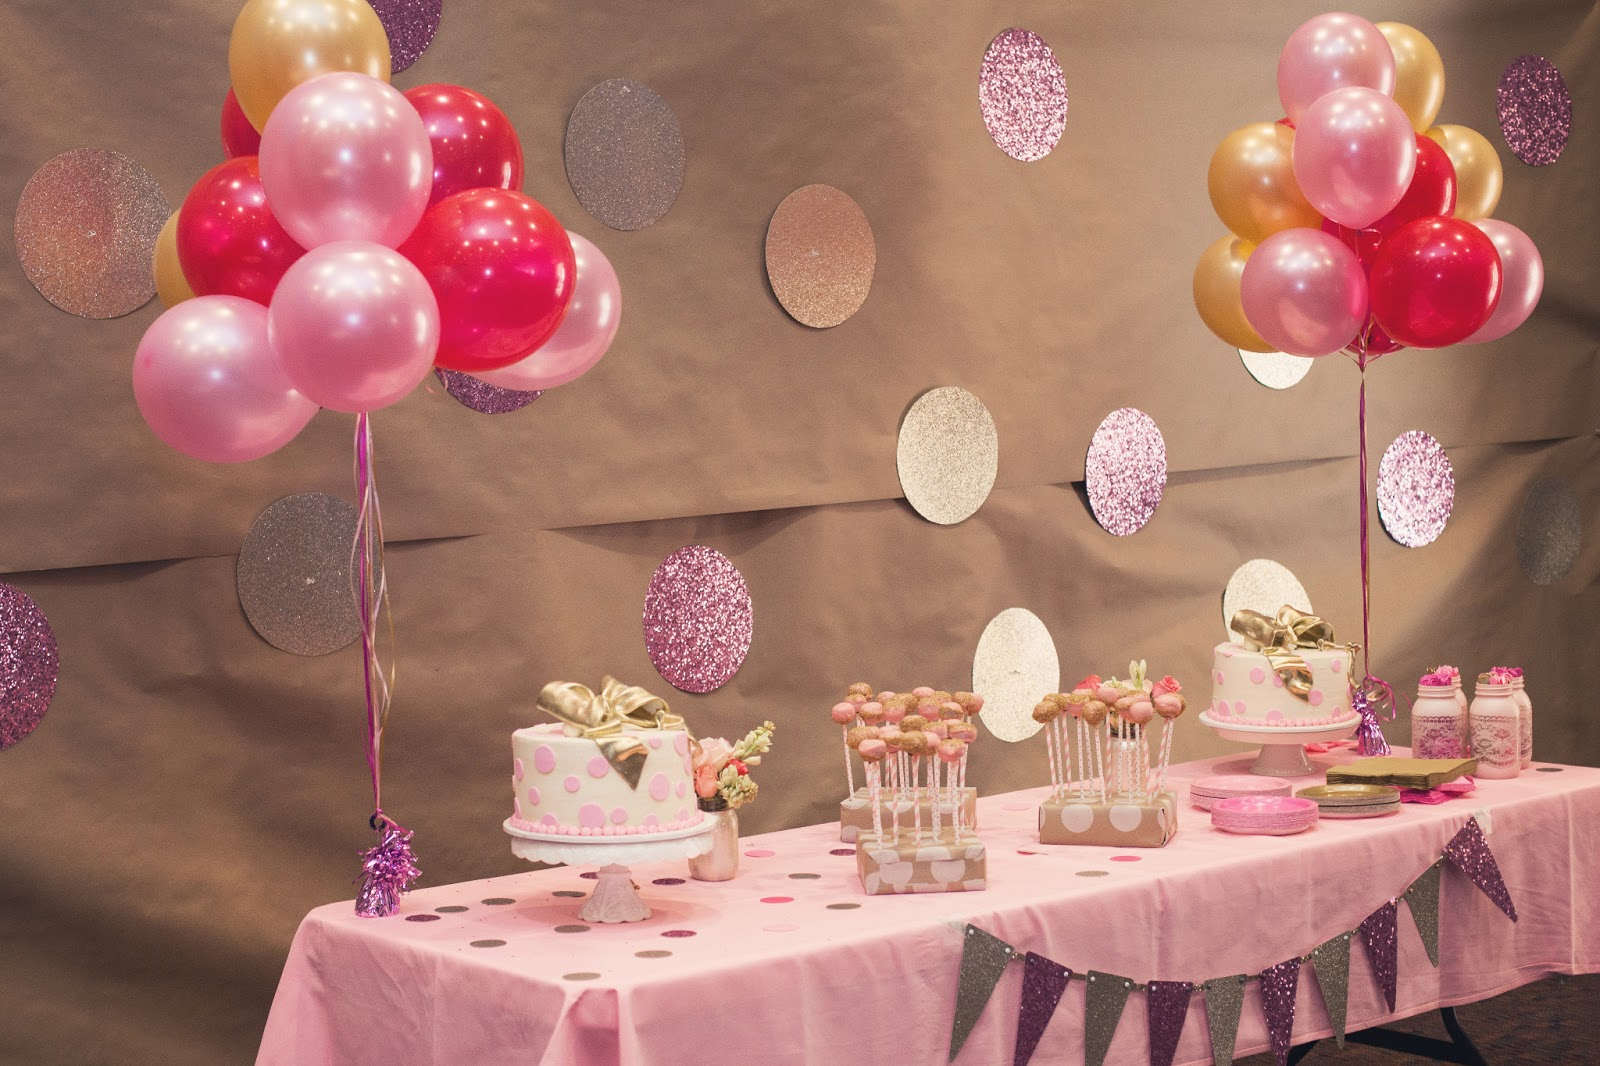 Nat your average girl 1st birthday party decor for 1st birthday decoration images